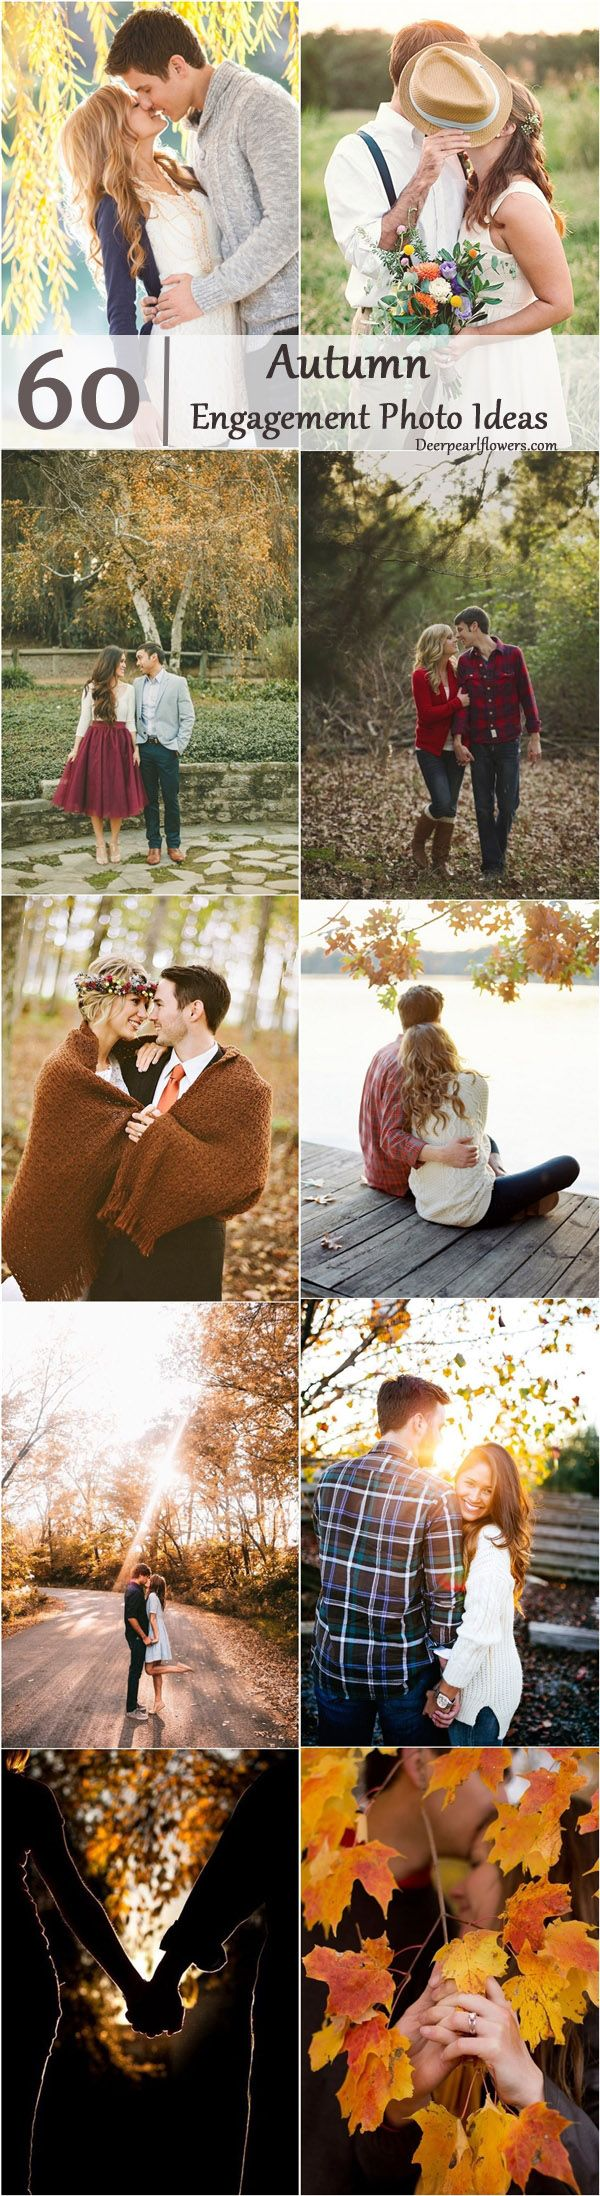 Fall Engagement Photo Poses Ideas / http://www.deerpearlflowers.com/fall-engagement-photo-ideas/3/